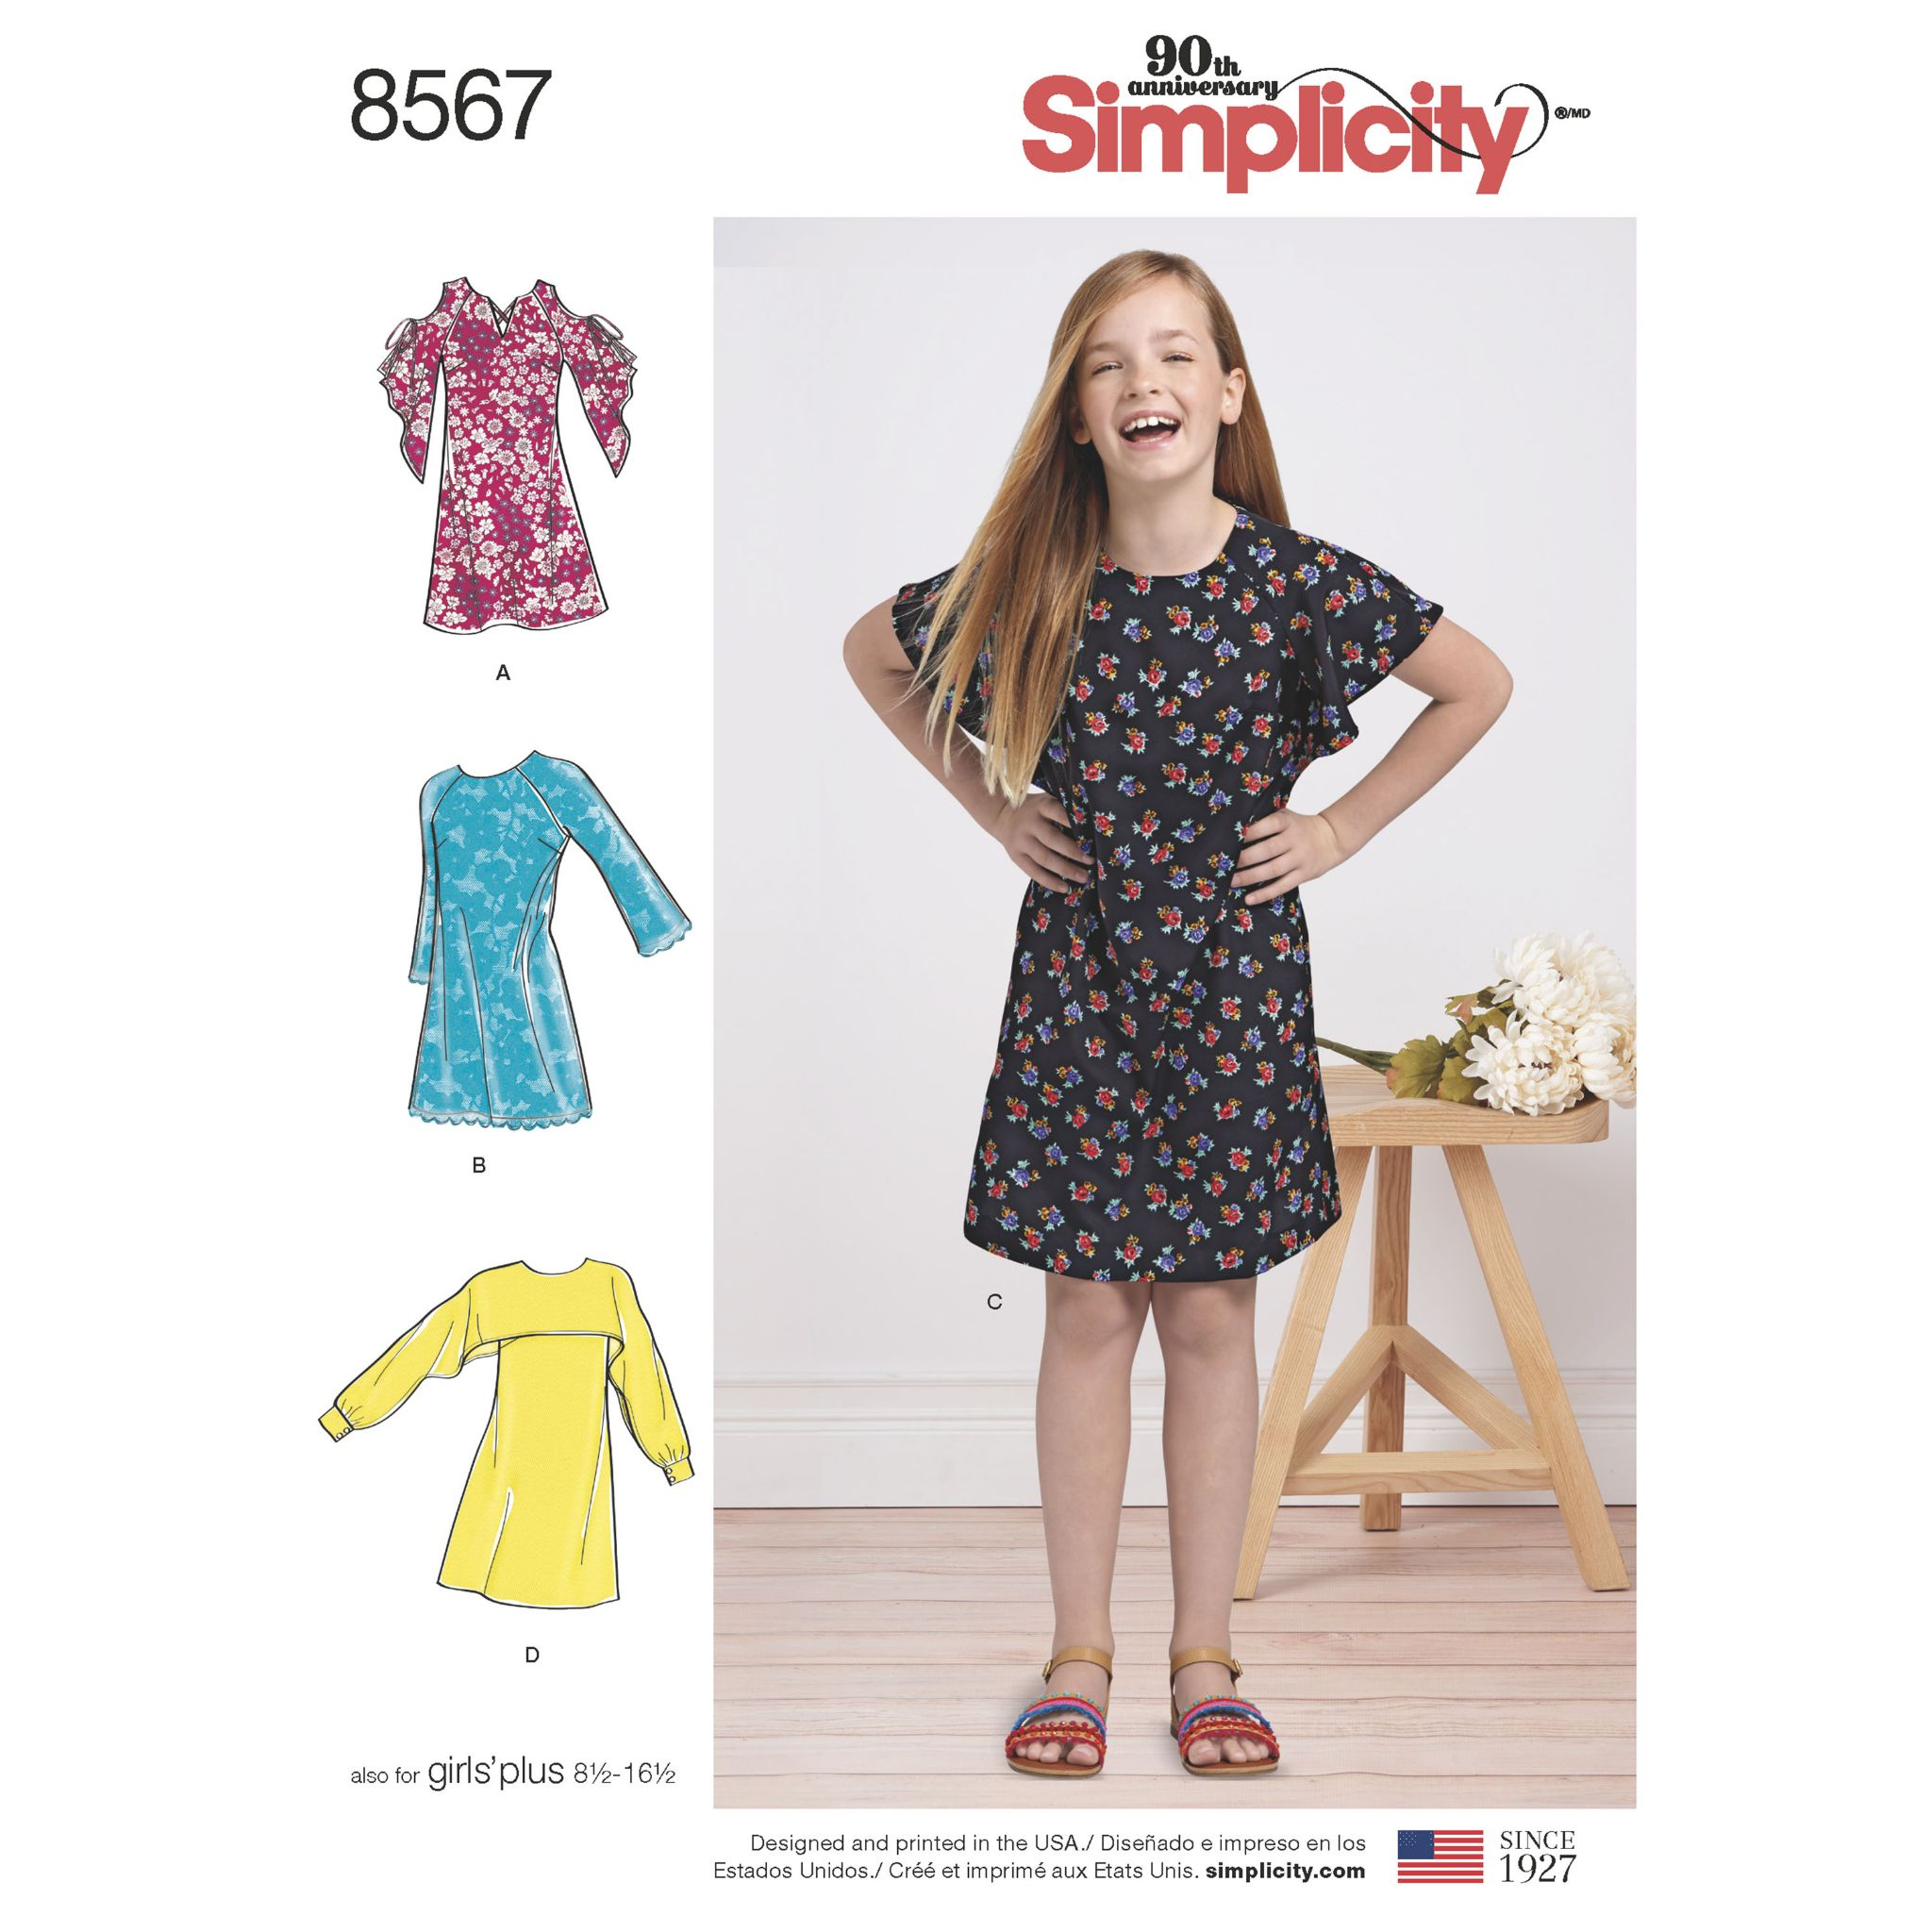 8567 Simplicity Pattern Girls Dresses with Plus Size Girls Option